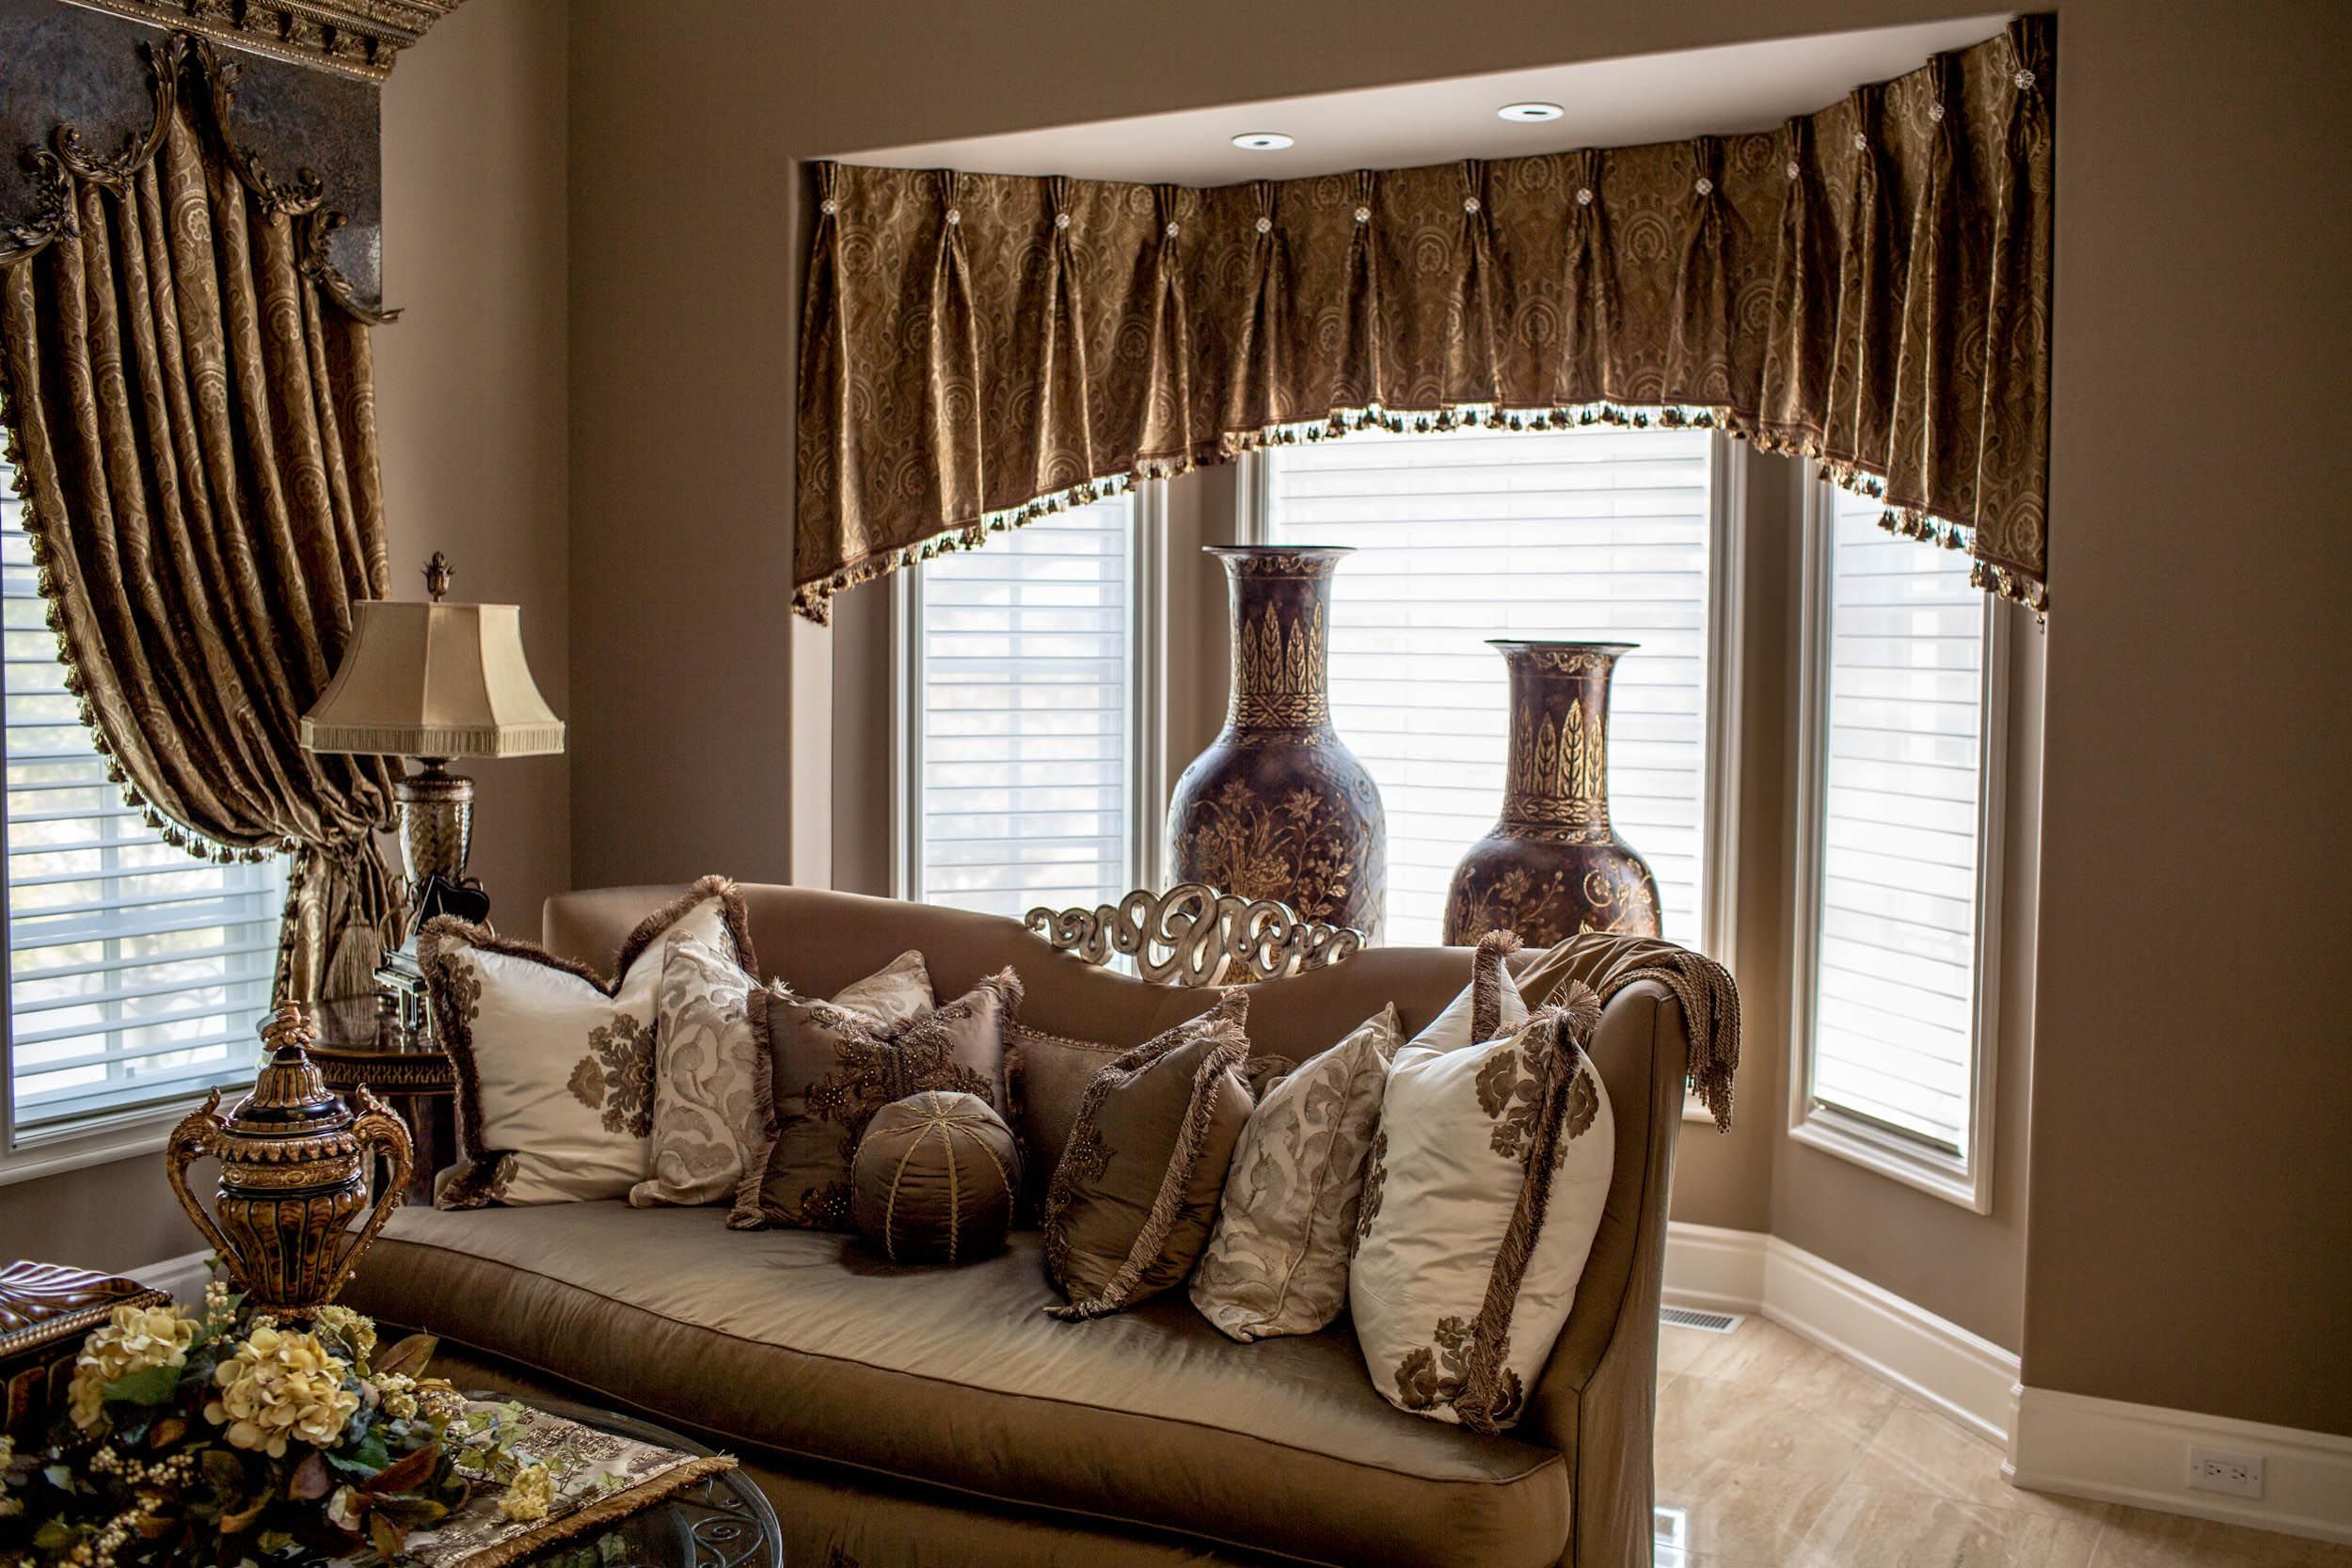 Fancy Valances For Living Room Valances For Living Room Window Treatments Living Room Living Room Windows